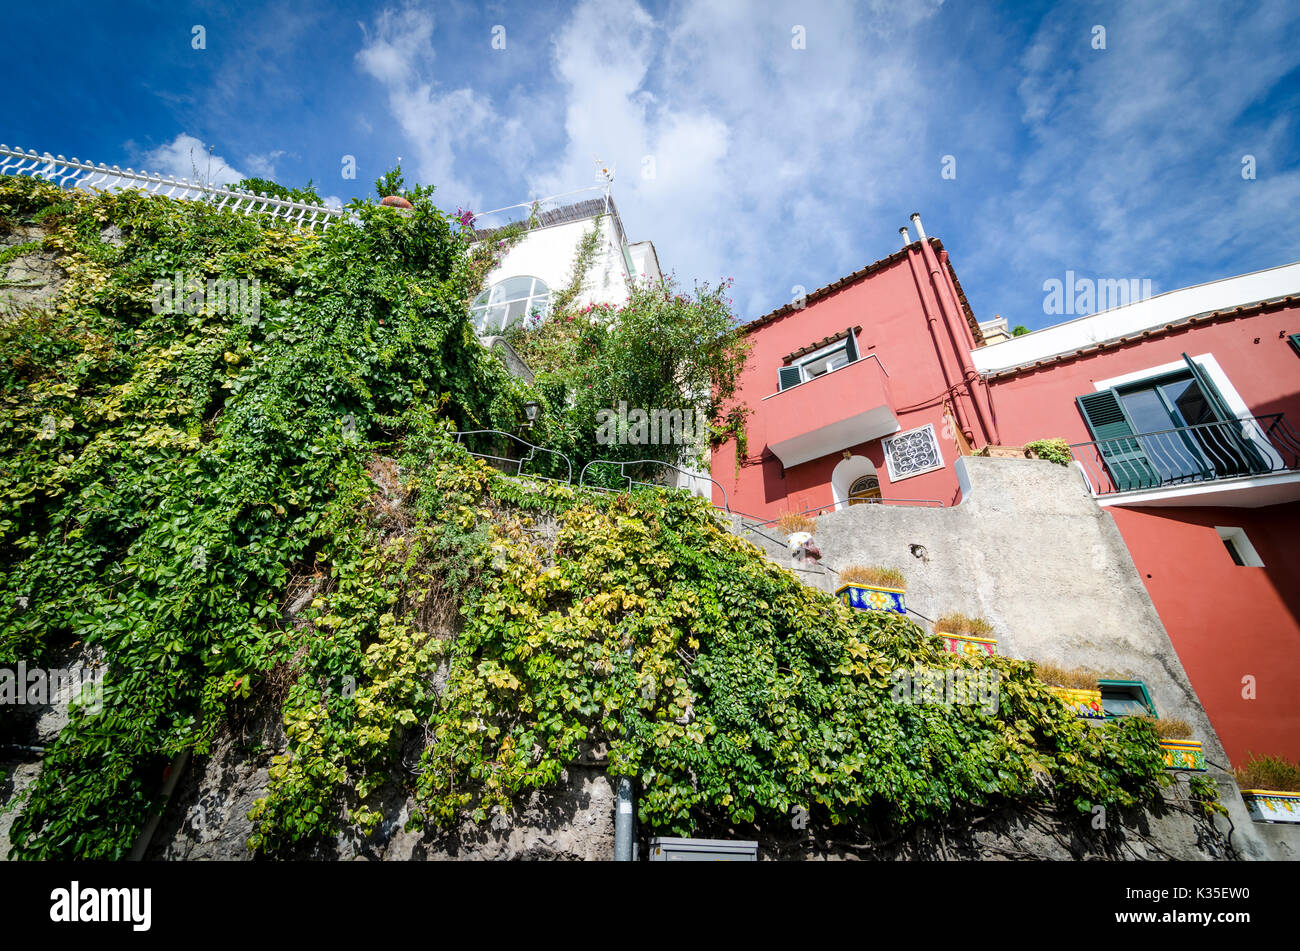 Dramatic view looking up at cliffside houses in Positano, Italy on the Amalfi Coast. Stock Photo